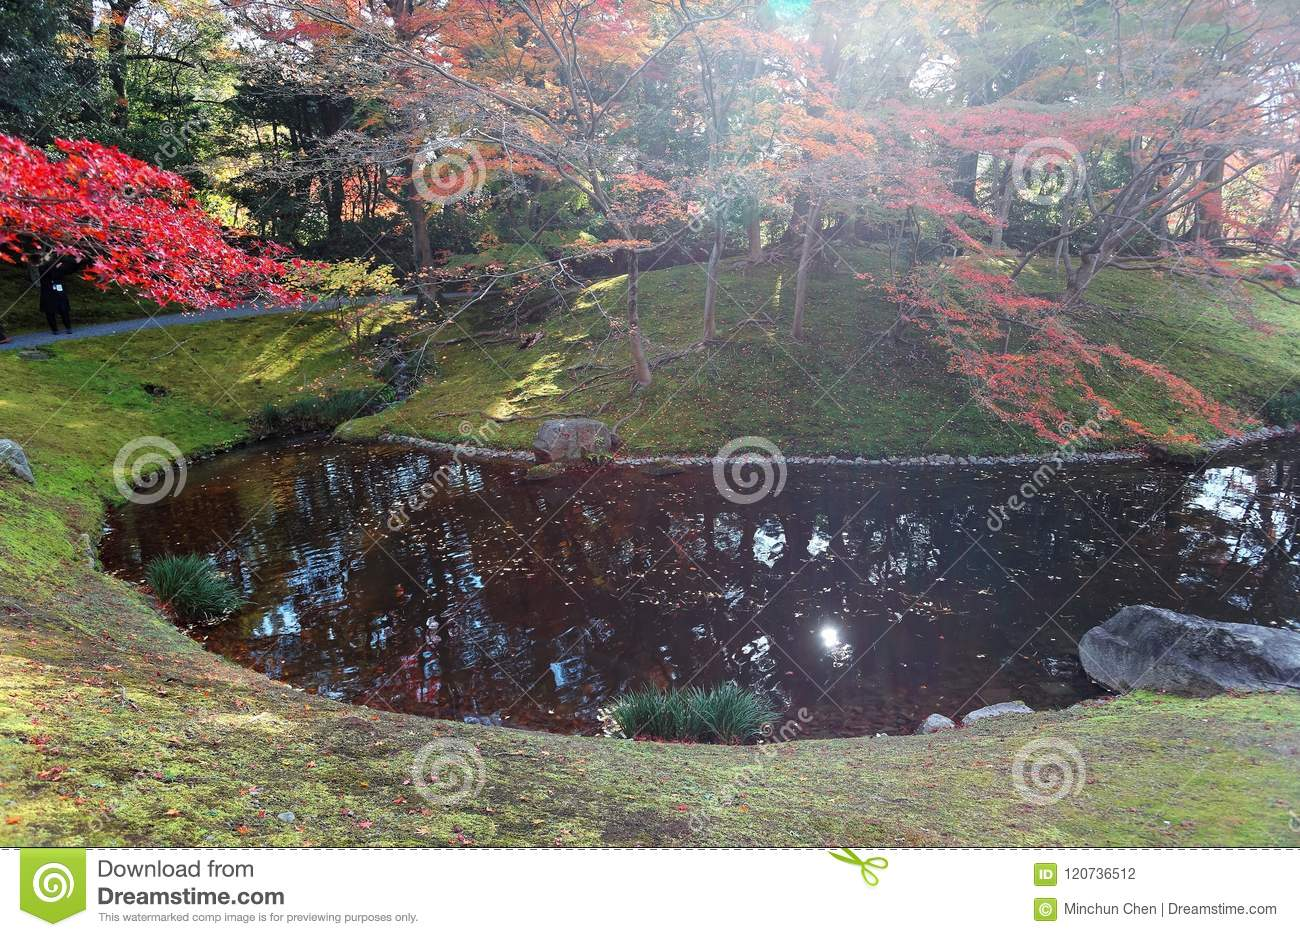 Autumn scenery of a beautiful corner in a Japanese garden in Sento Imperial Palace Royal Villa Park in Kyoto, Japan